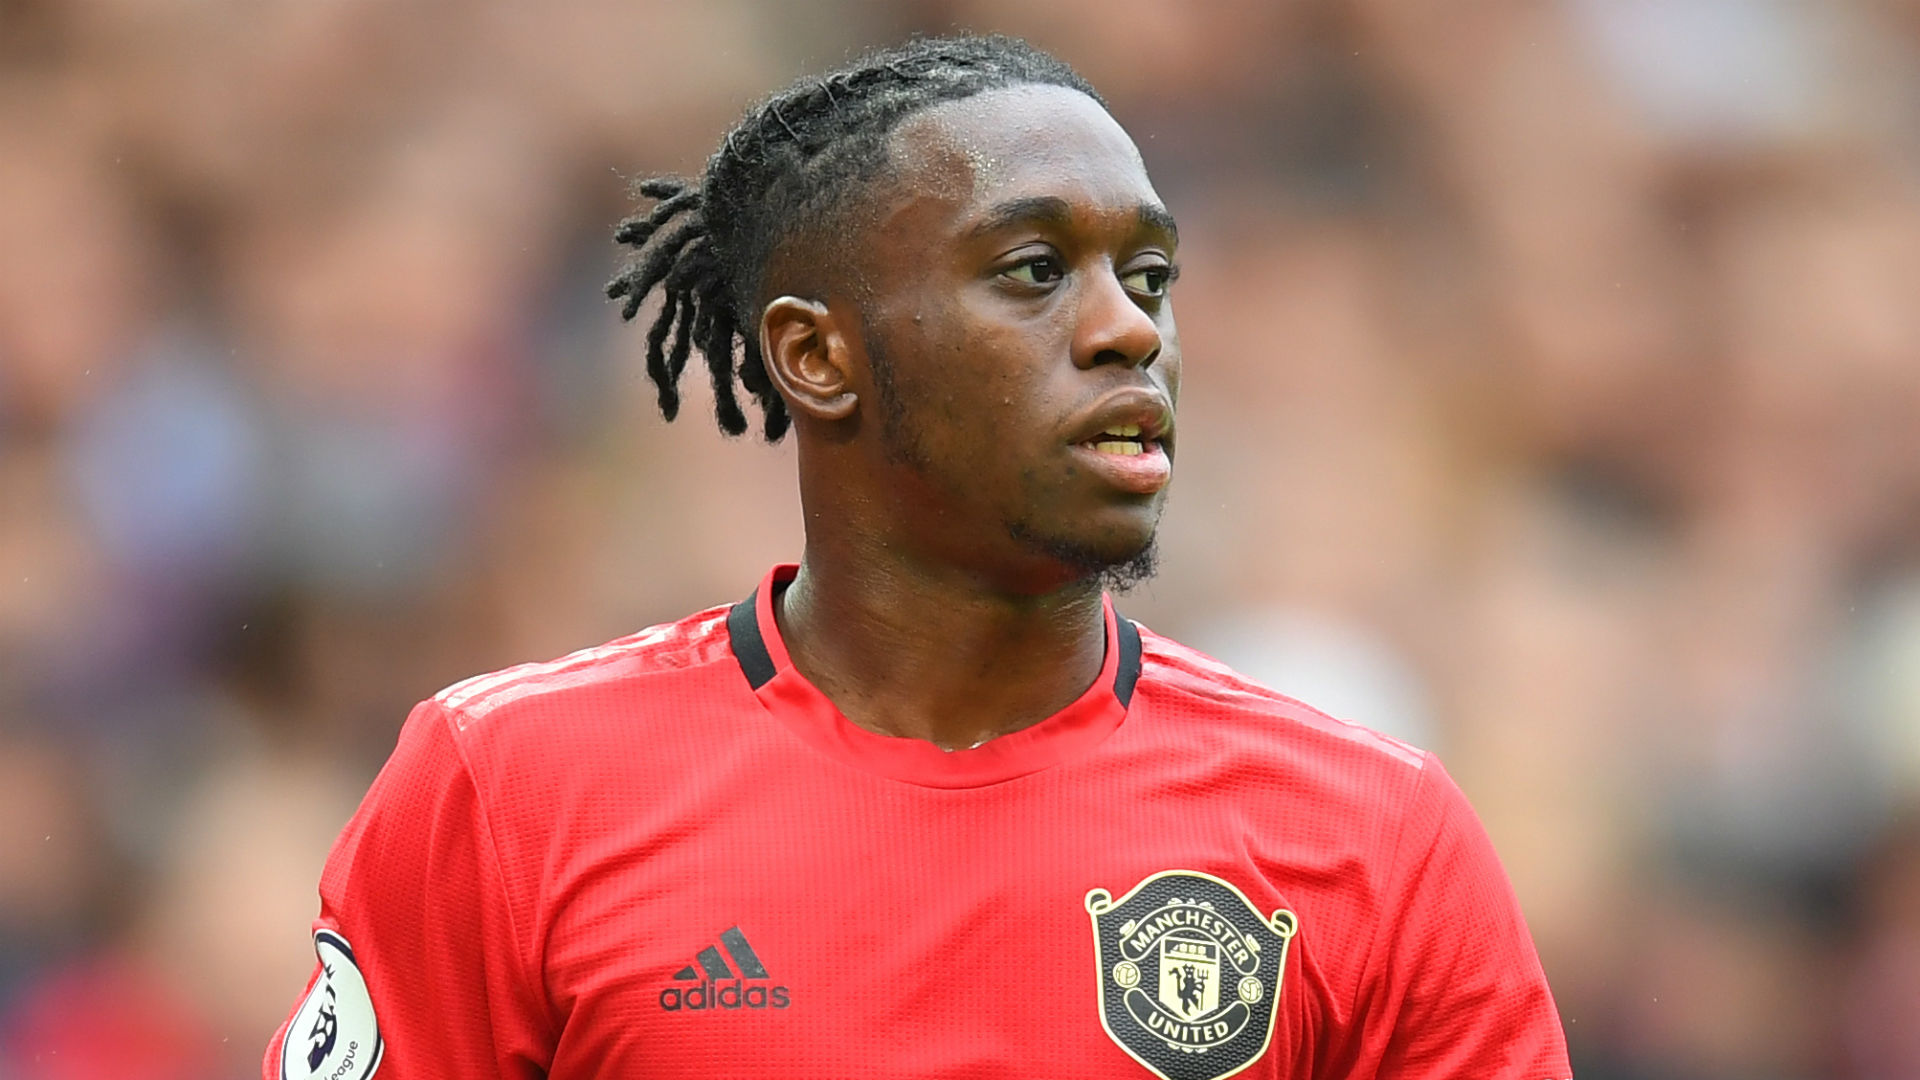 'Wan-Bissaka is tailor-made for Man Utd' – Former coach hails full-back's 'never-say-die' attitude